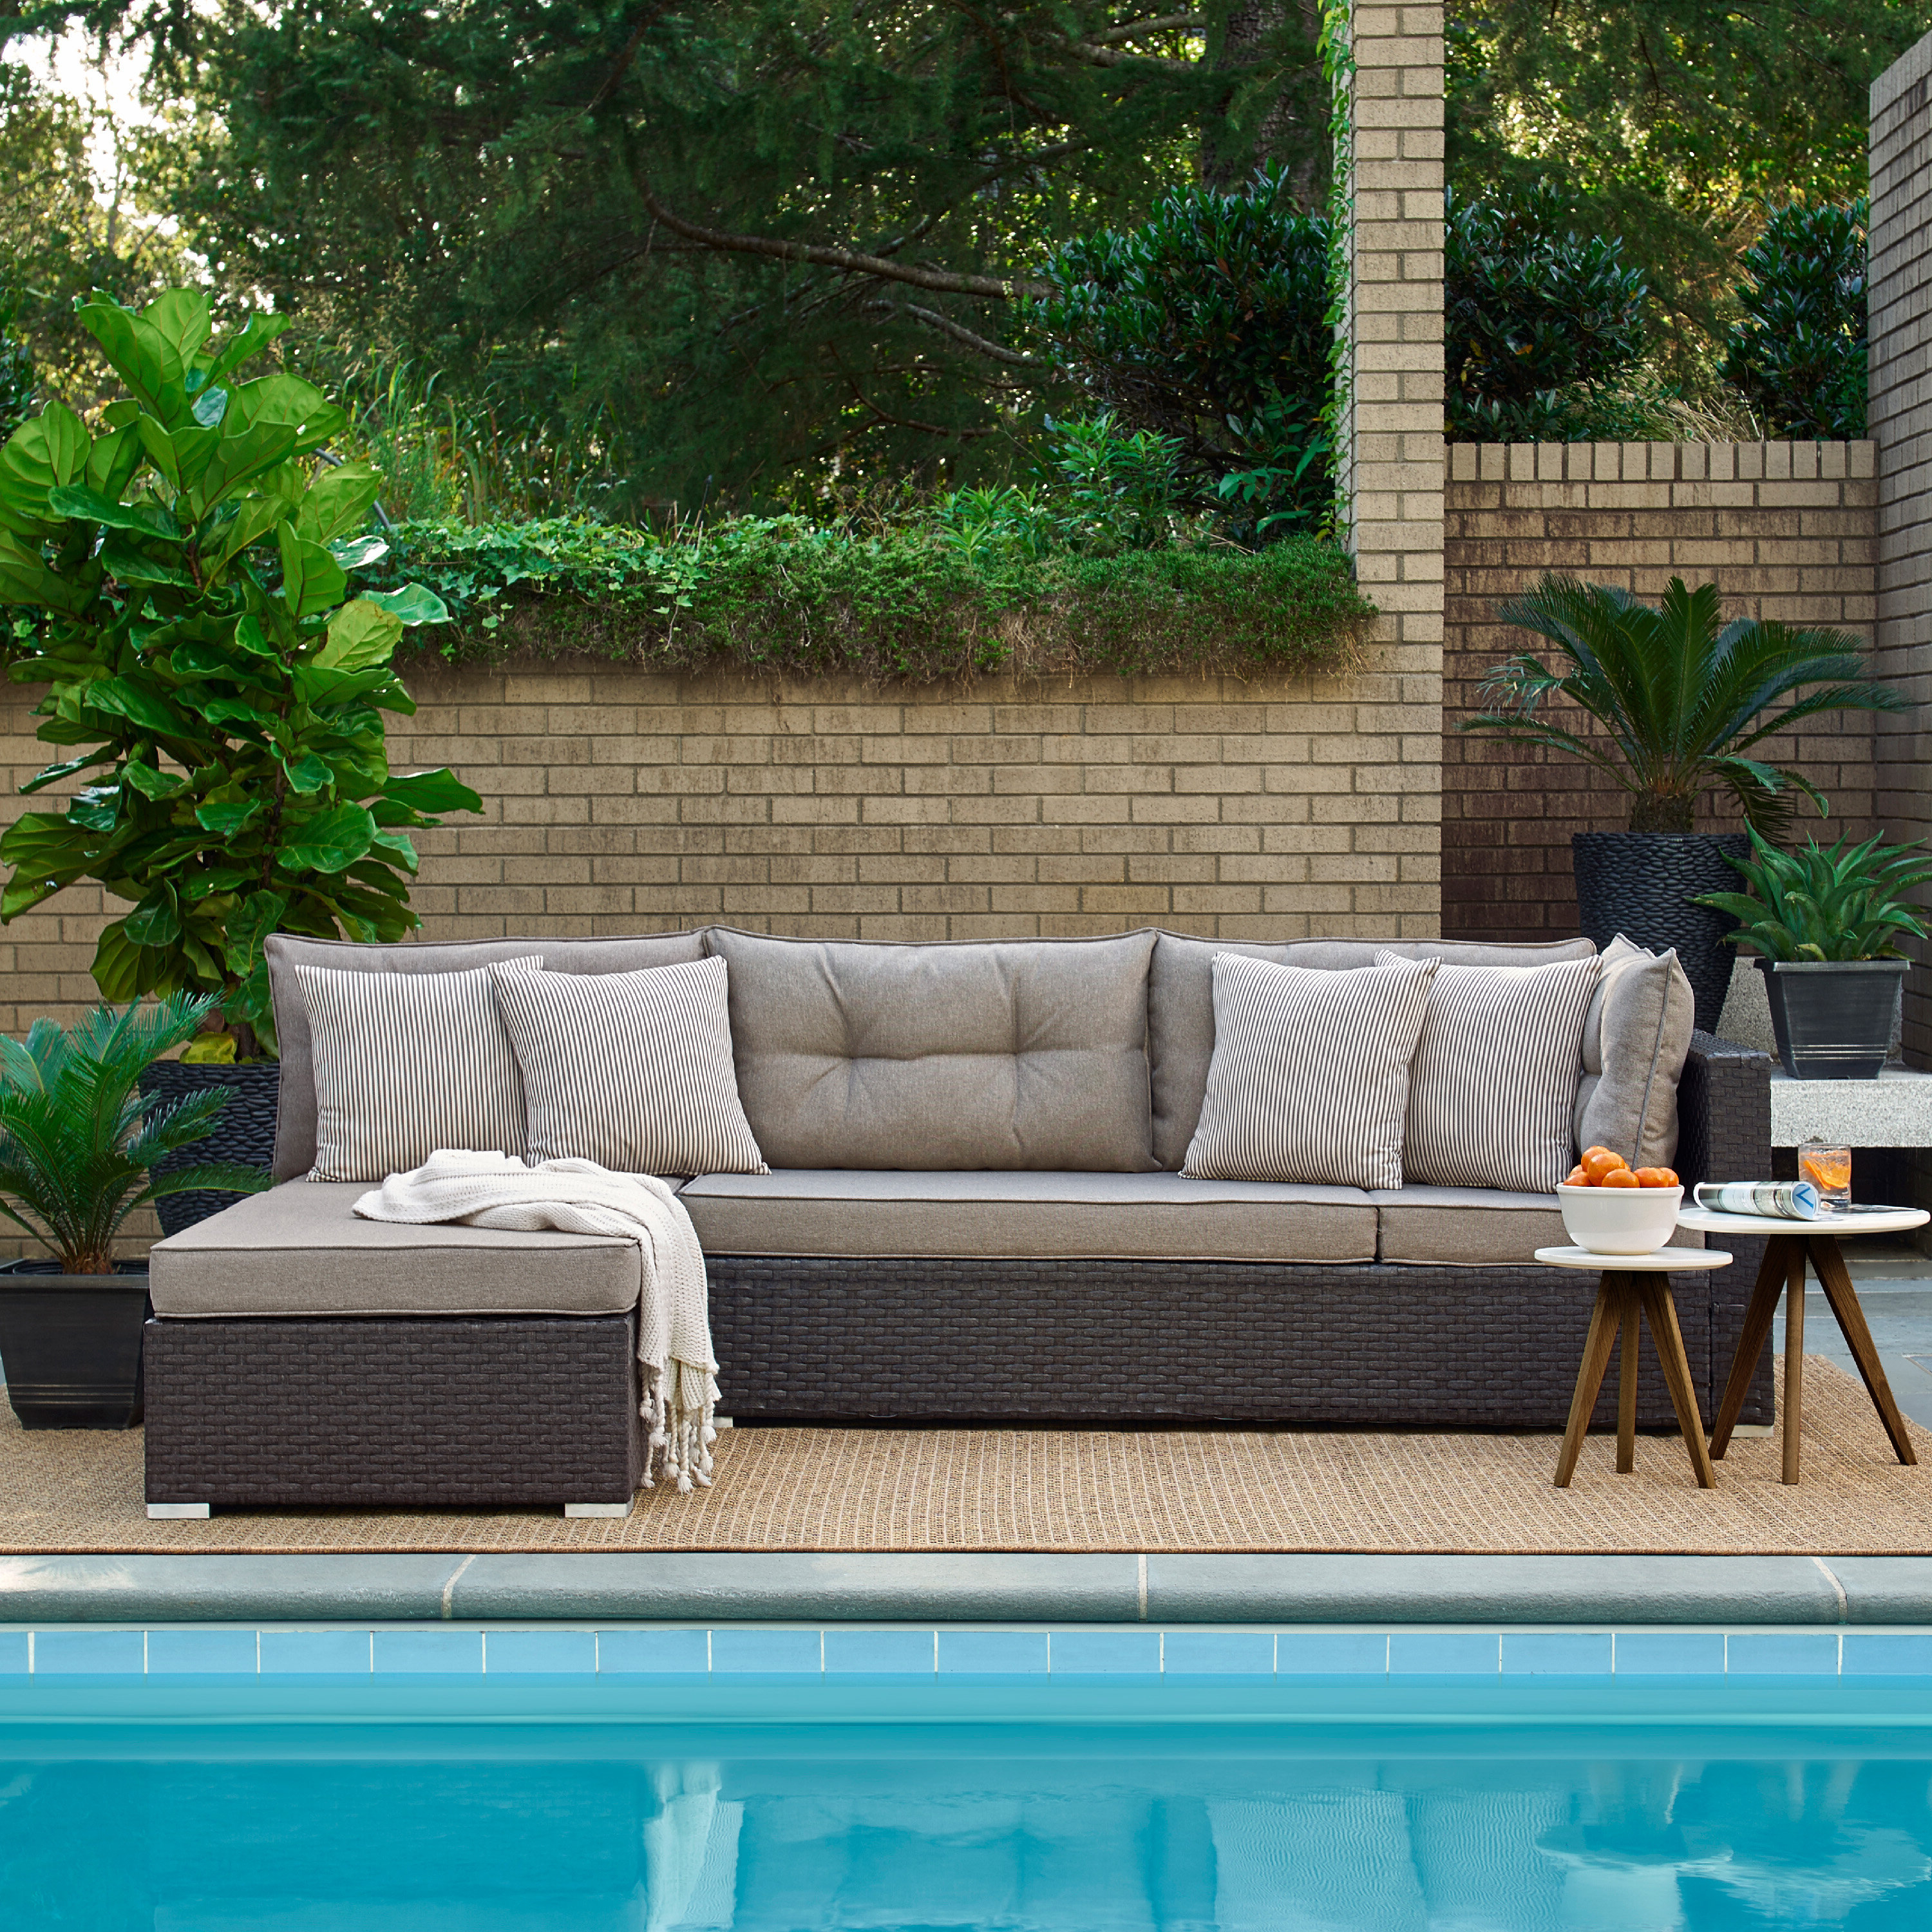 Preferred Ayden Patio Sectional With Cushions Throughout Nolen Patio Sectionals With Cushions (Gallery 16 of 20)